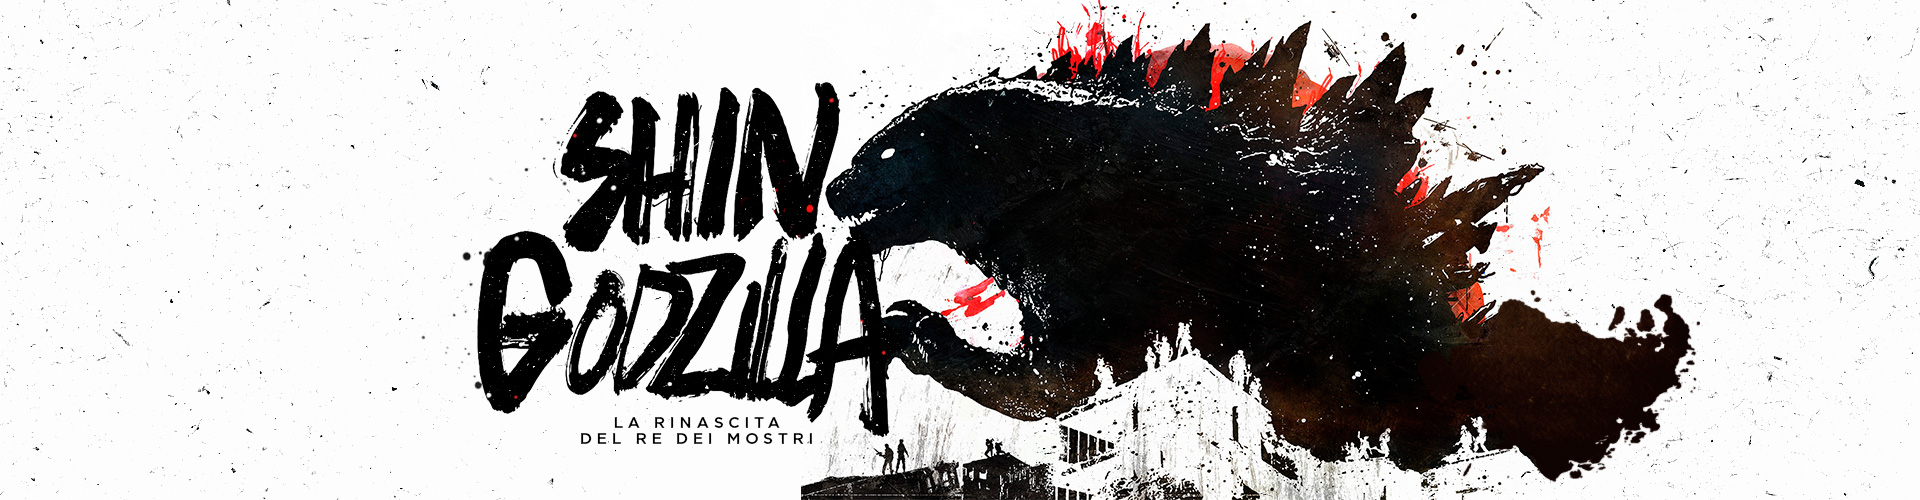 Dvd-it_slider_ShinGodzilla